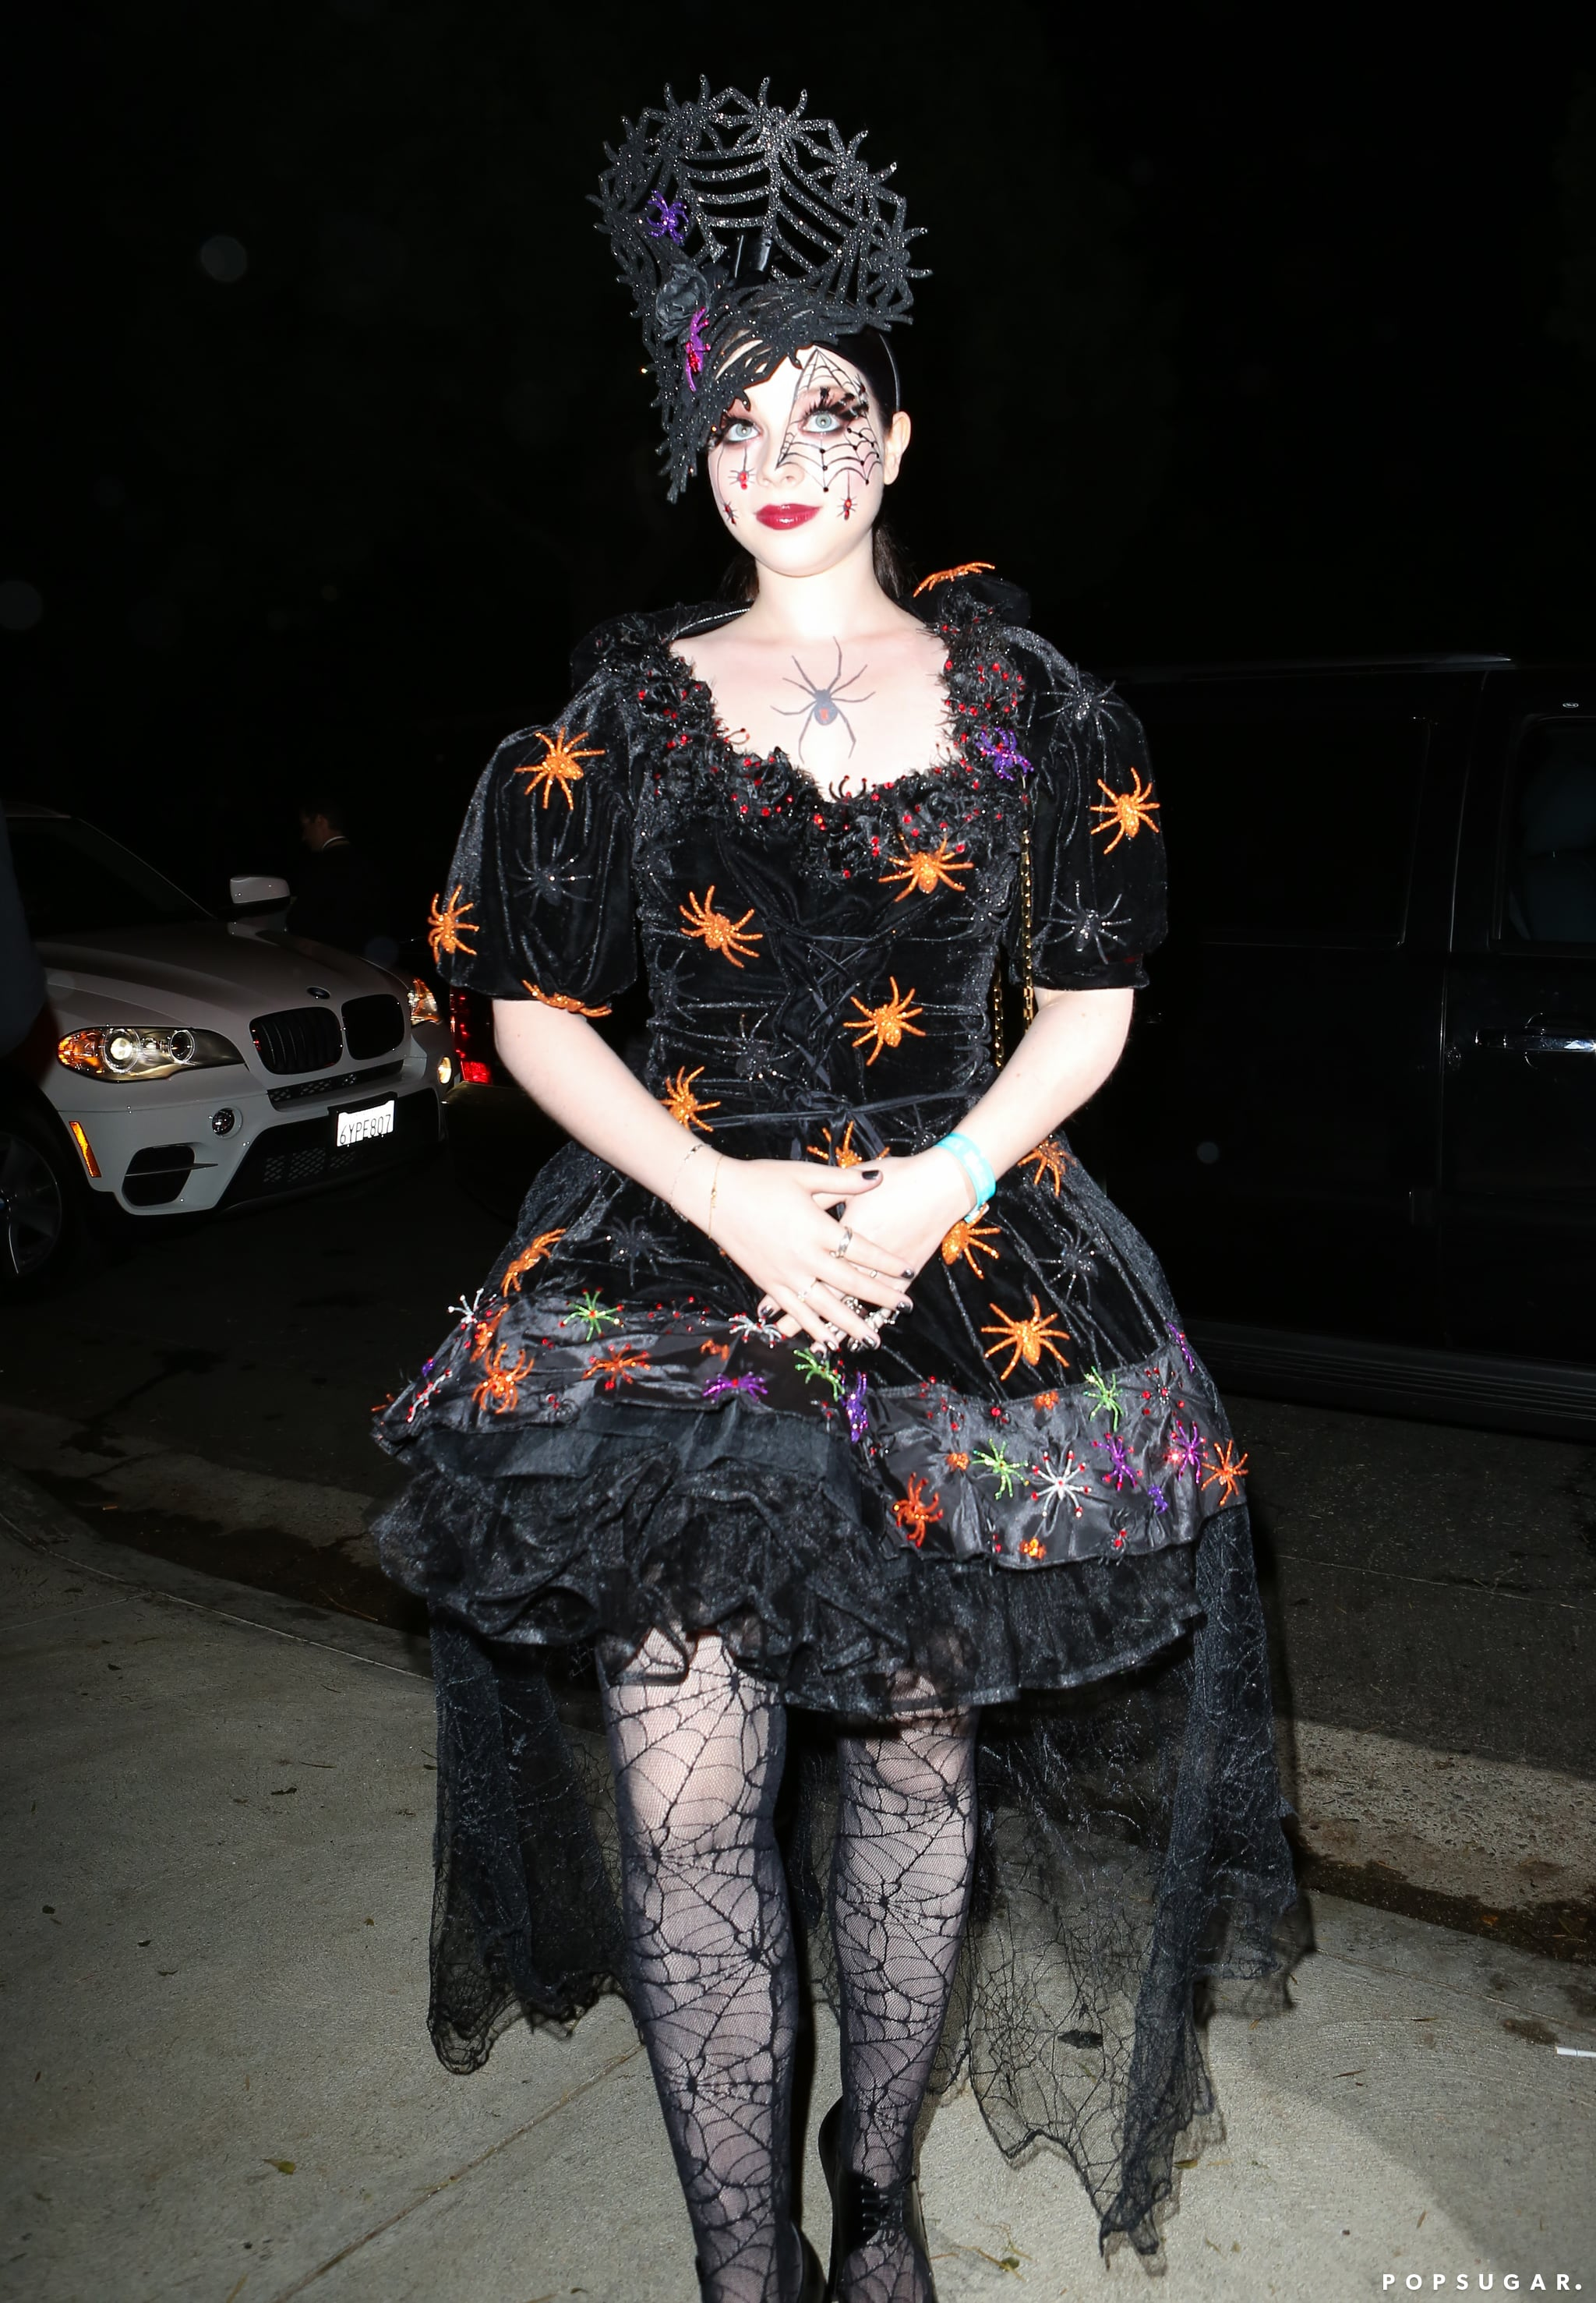 We're guessing Michelle Trachtenberg's costume for the Casamigos Halloween Party was something along the lines of a black widow.